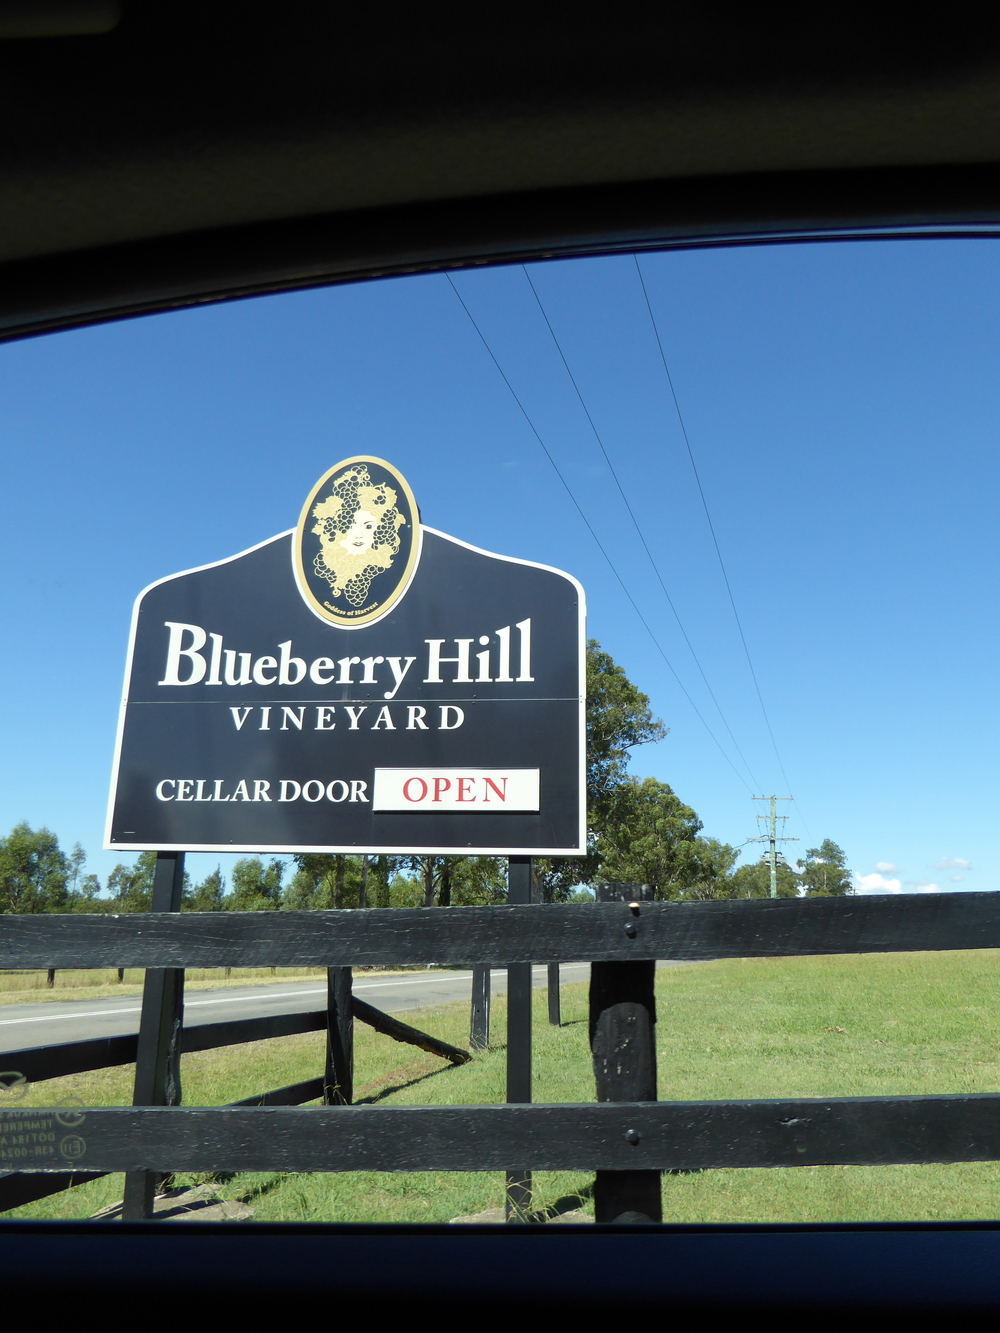 Blueberry Hill Vineyard